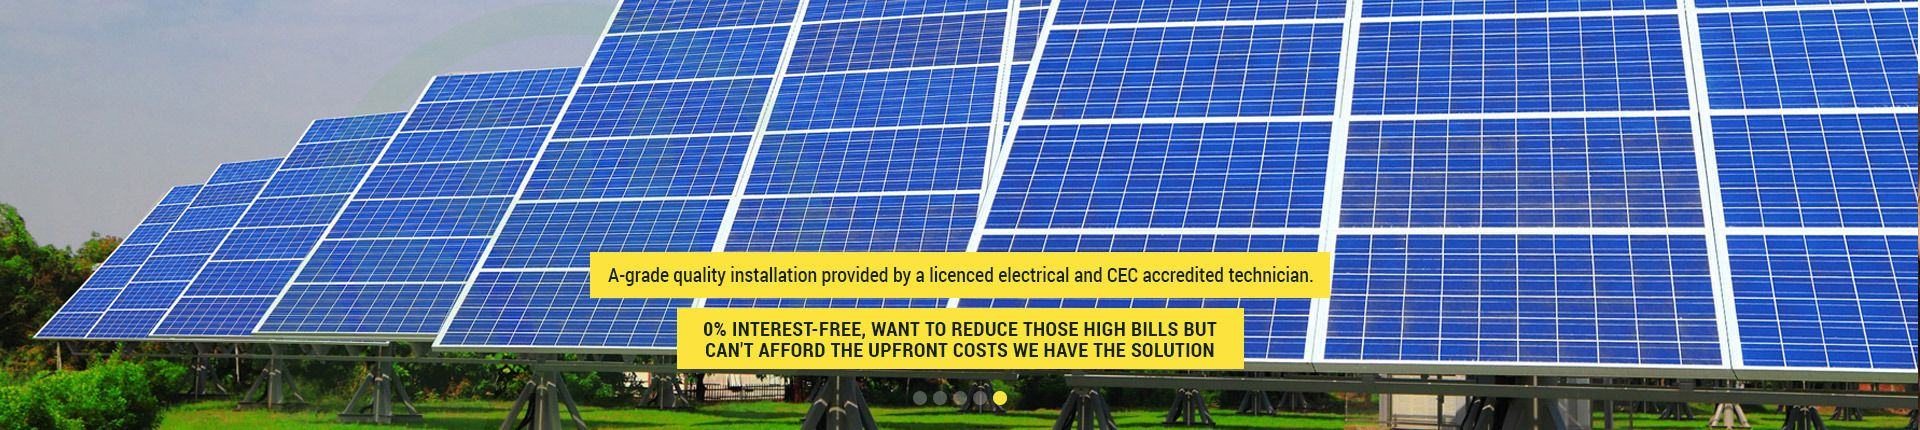 Choose Reliable Reputable Solar Installation Brisbane Services If You Are Looking For One Then Solar Installation Solar Panels For Home Solar Panel Companies